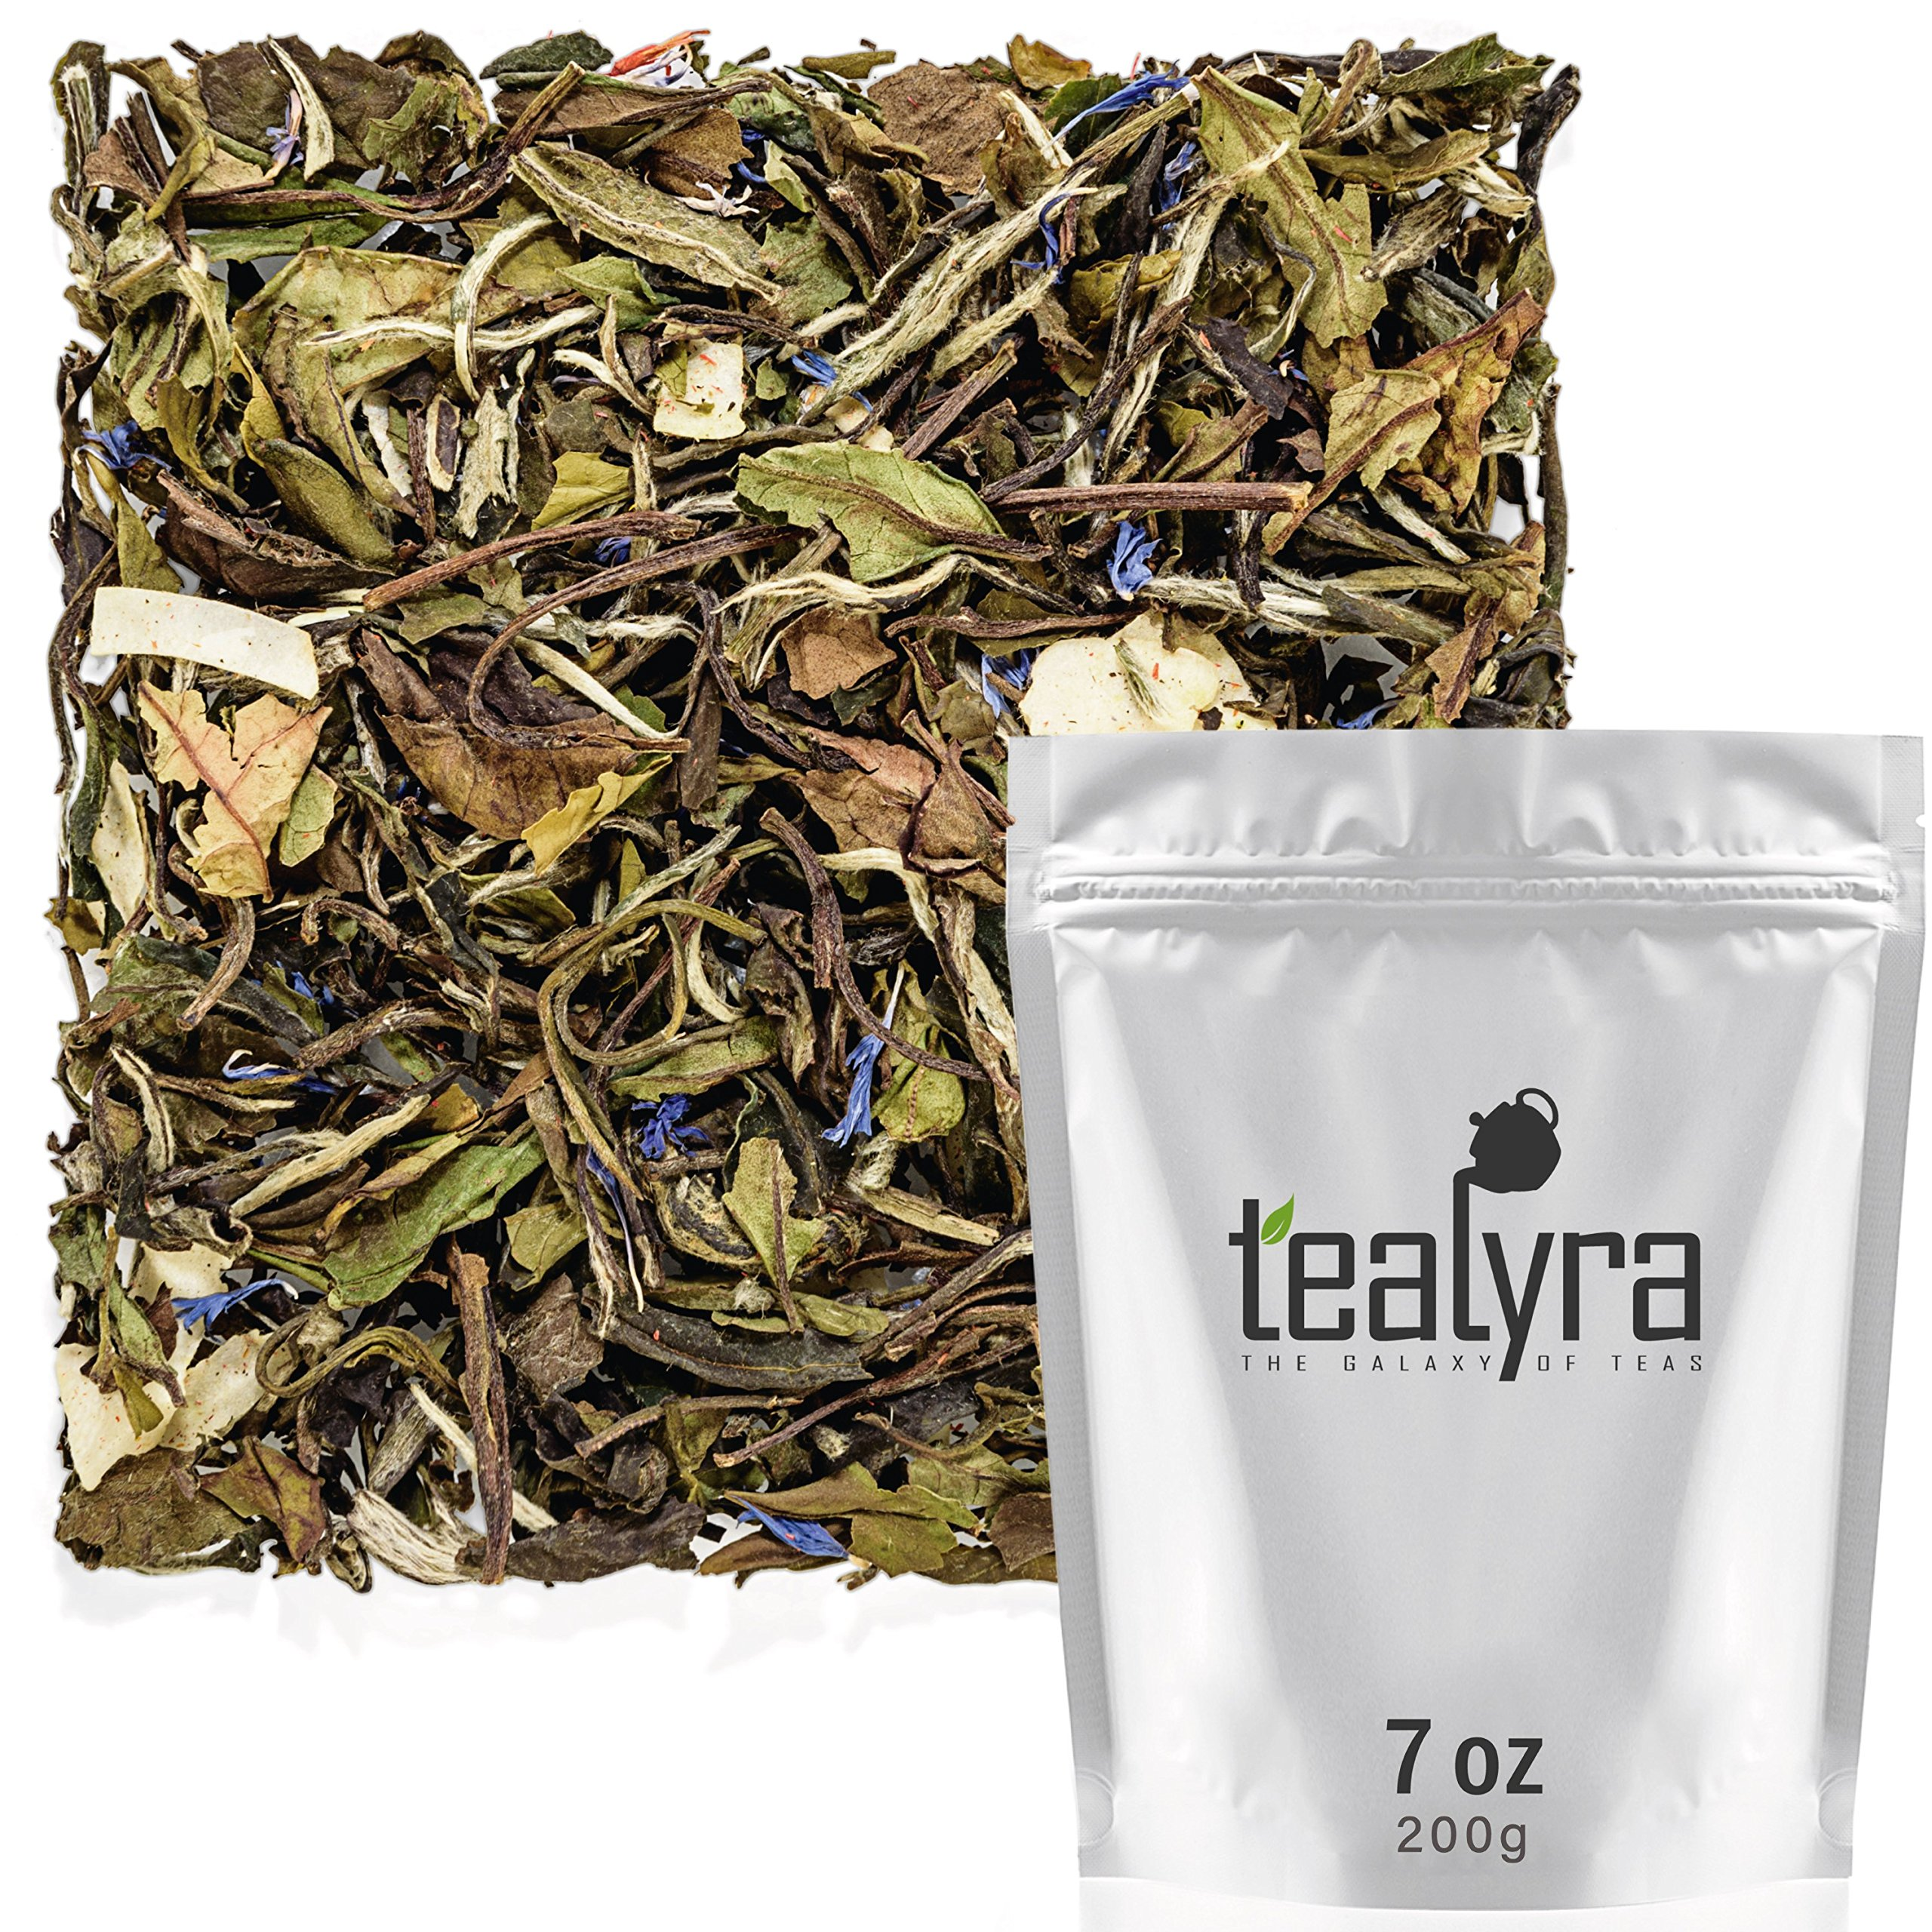 Tealyra - White Coconut Cream - Premium White Tea with Coconut Chips Blend - Loose Leaf Tea - High in Antioxidants - Caffeine Level Low - All Natural Ingredients - 200g (7-ounce) by Tealyra